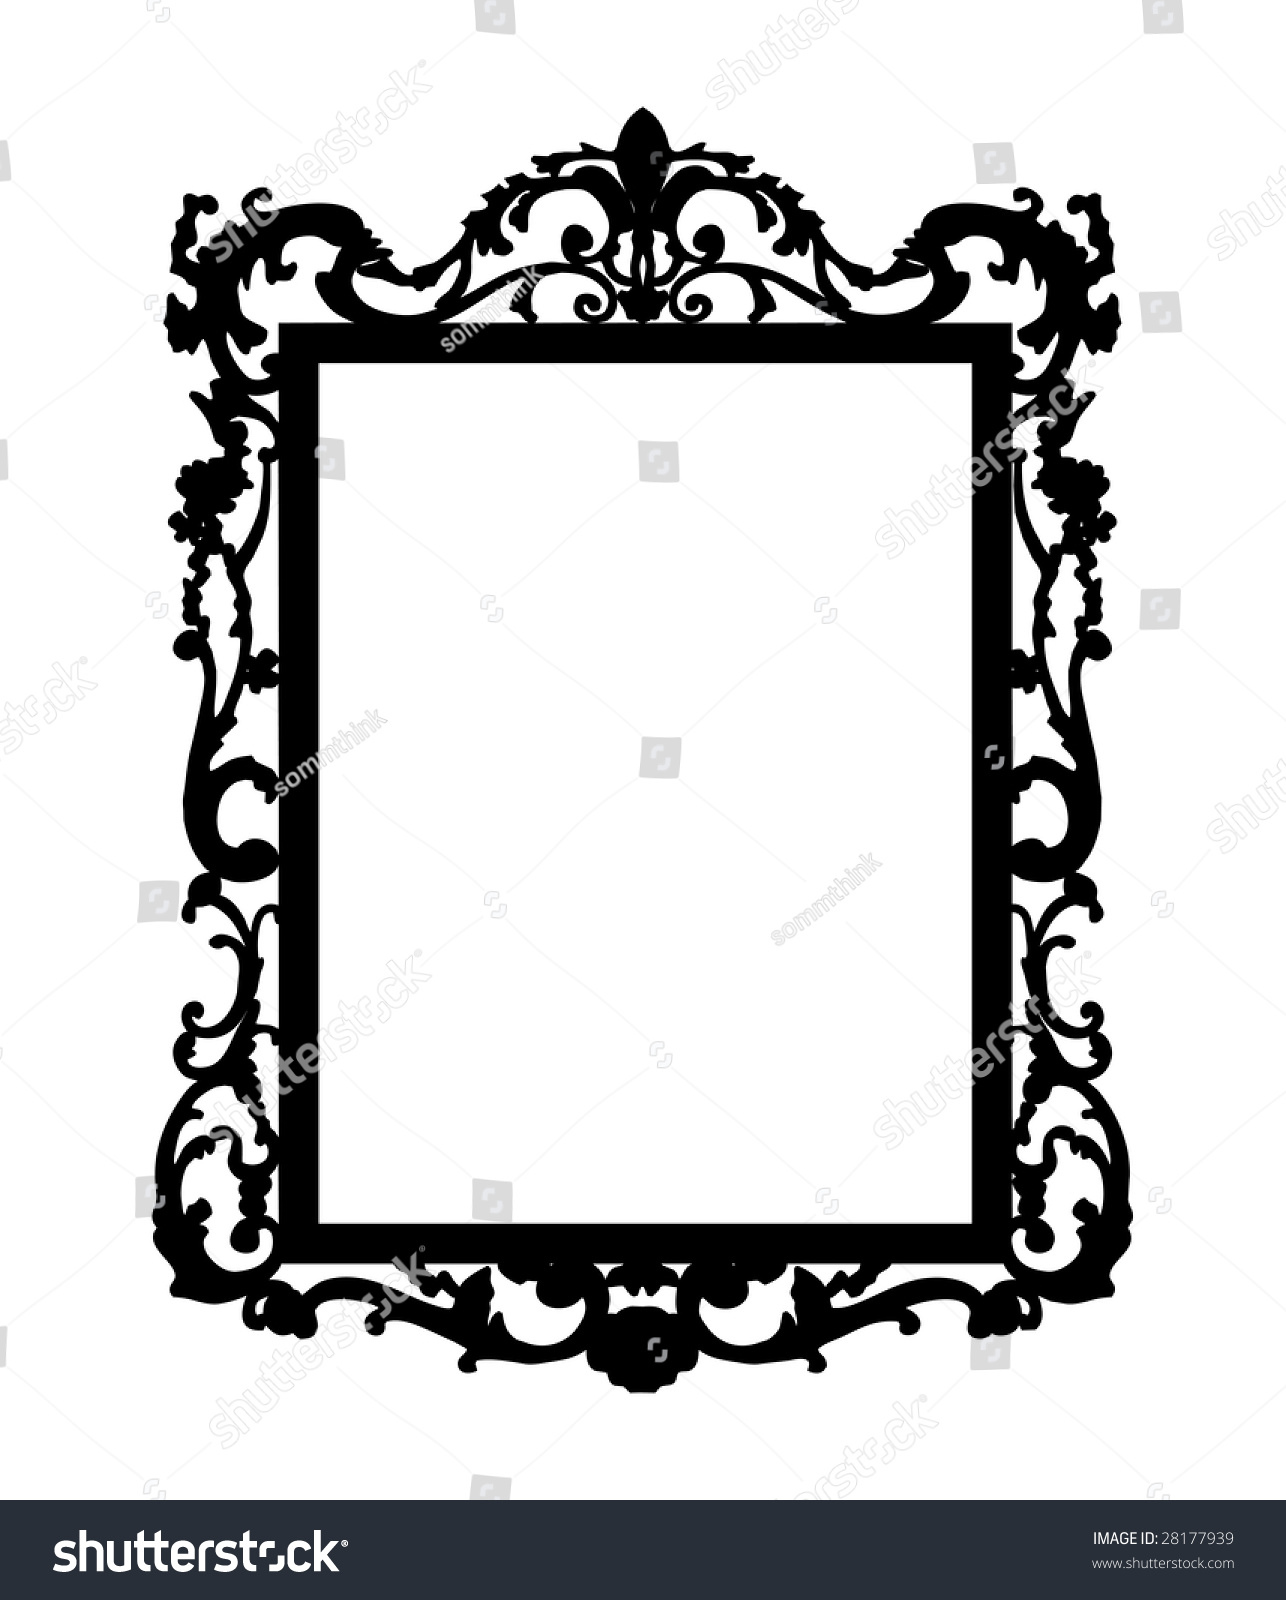 Wall Mirror Clipart Black And White Mirror Frame Stock Vectors